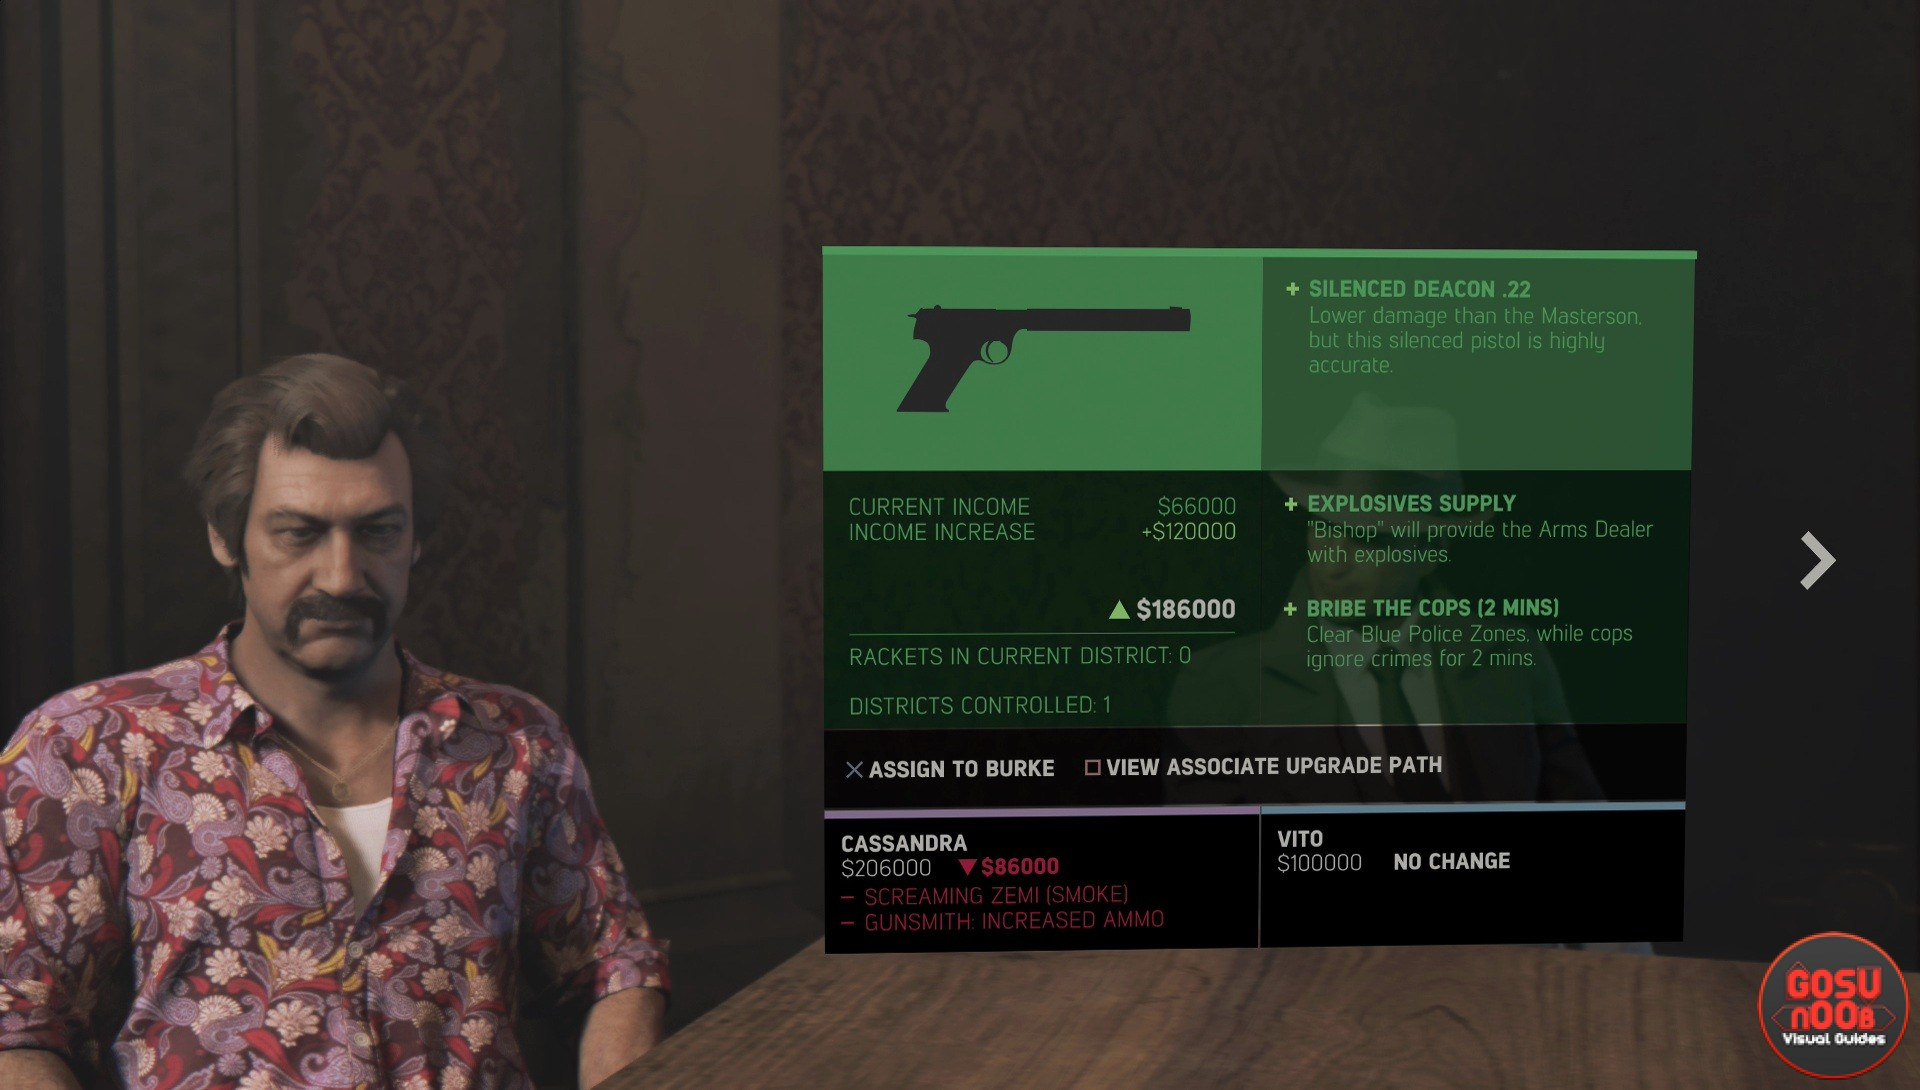 How To Get Easy Money >> Silenced Pistol / Gun in Mafia 3 - How to get